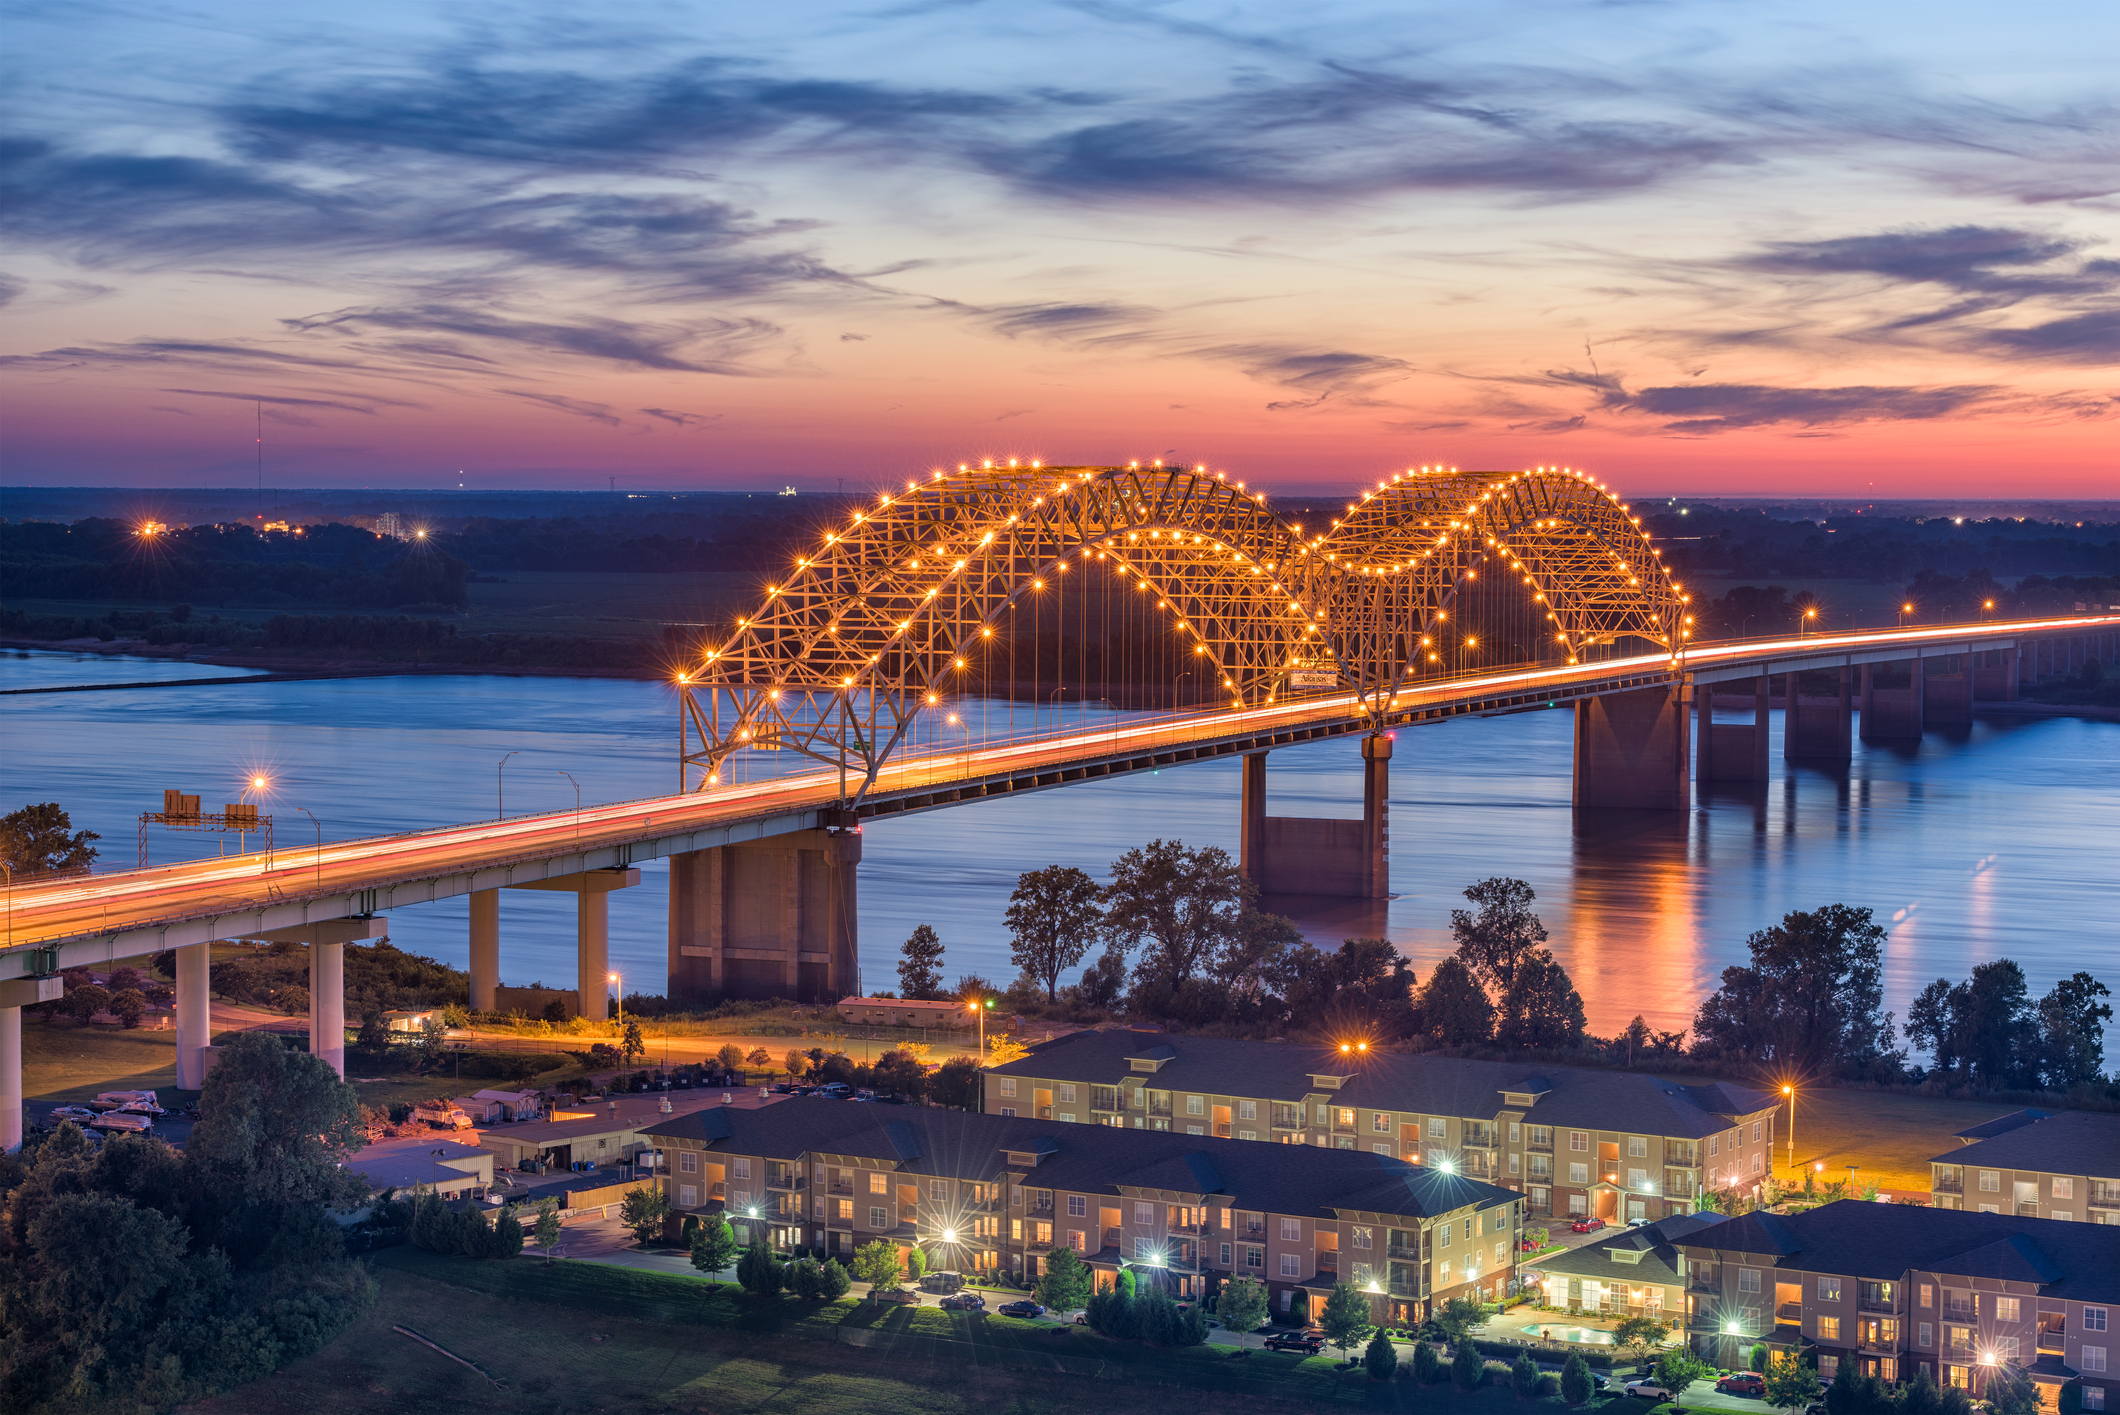 Memphis - Our newest market, Memphis, is also known as the logistics hub of America, and we are excited for the opportunity to keep growing here. Conveniently located on the Mississippi River, carriers from many states in the Southeast can pick up intermodal loads from the area.